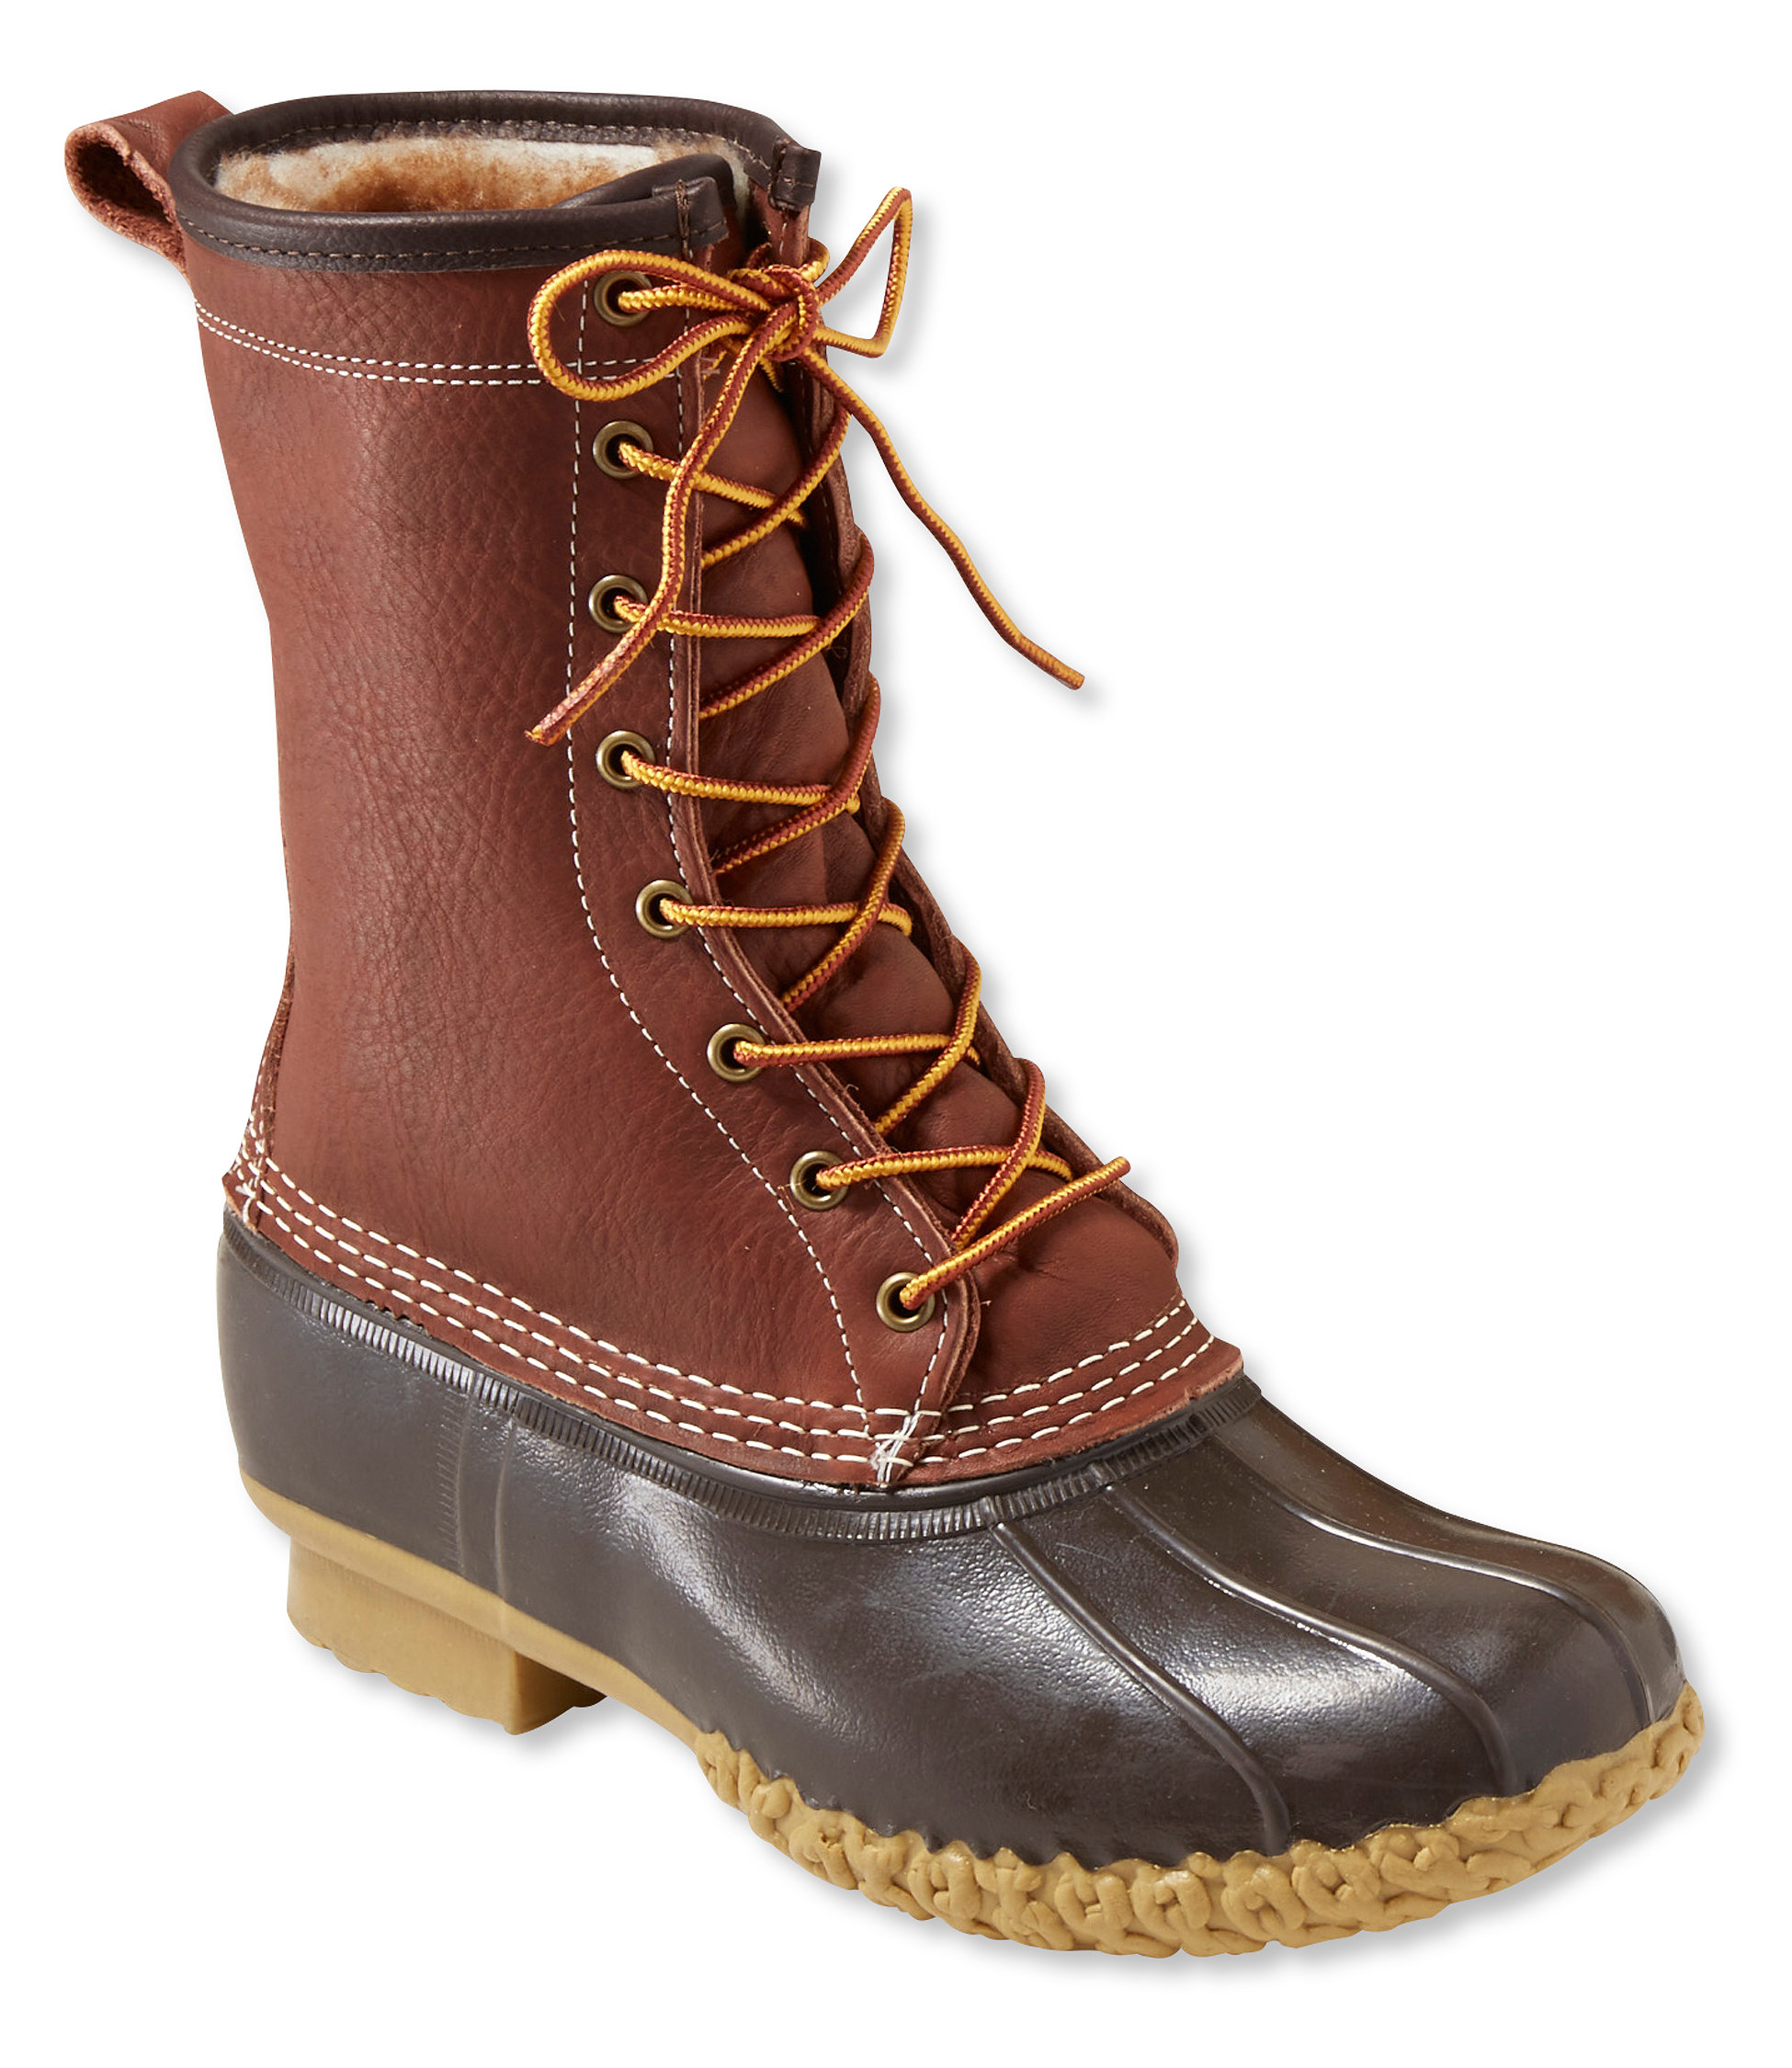 "L.L.Bean Boots, 10"" Tumbled-Leather Shearling-Lined"